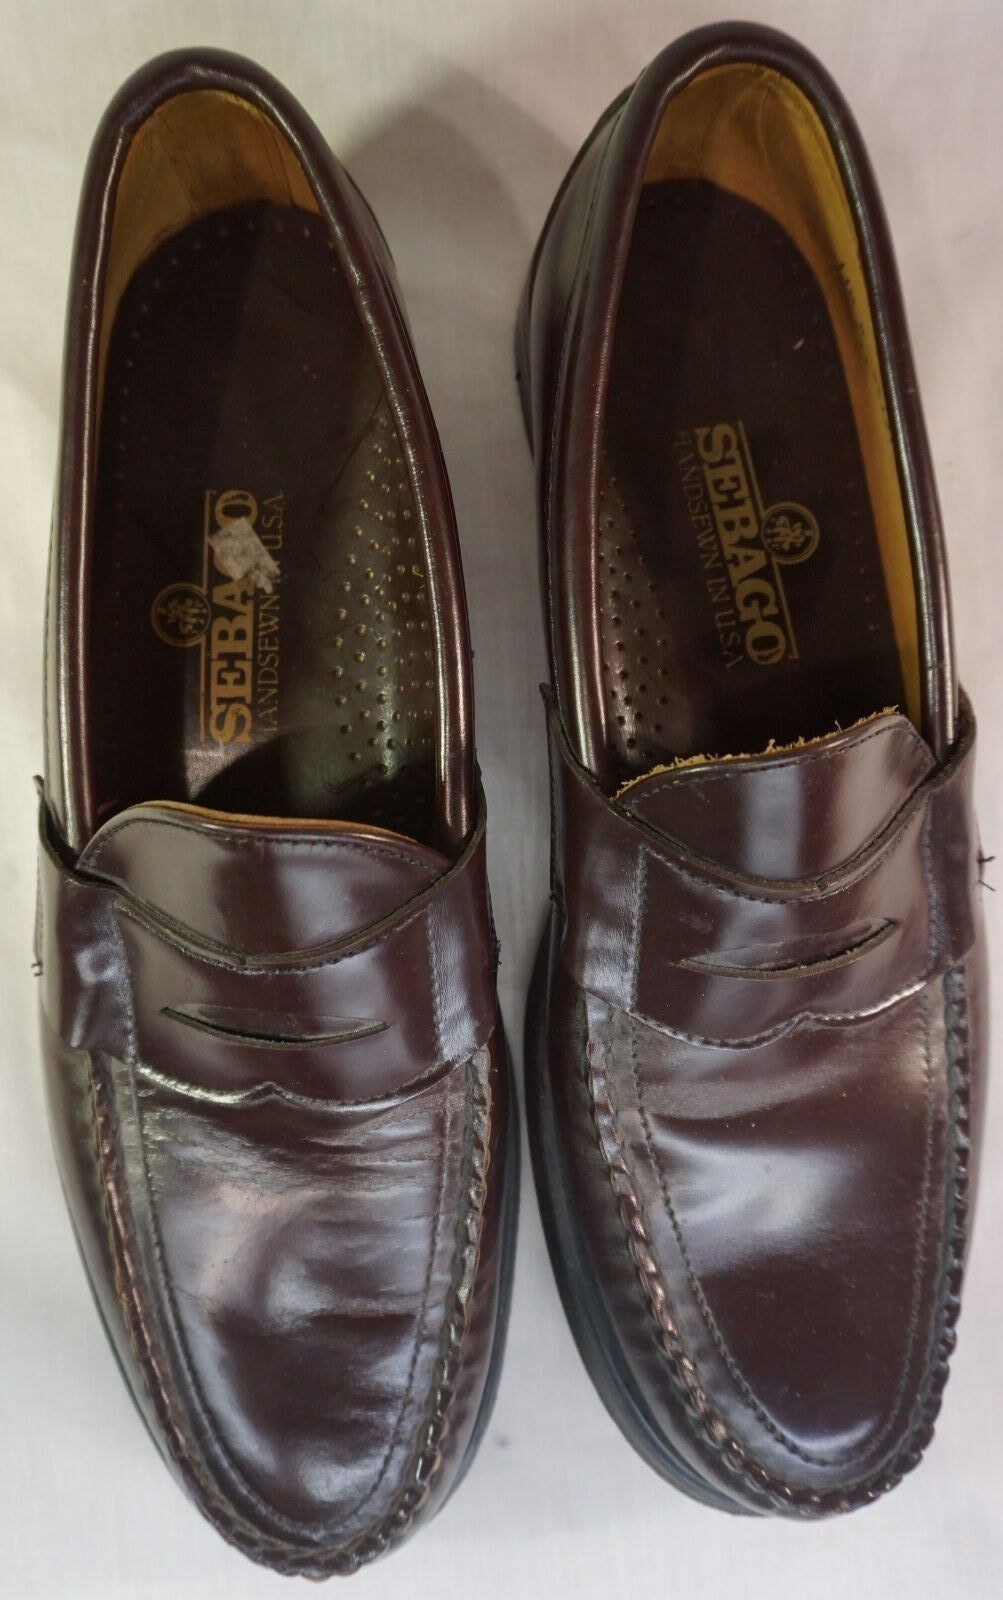 Handsewn Leather Sebago Cayman 90-733 Size 11.5 A Brown Loafers